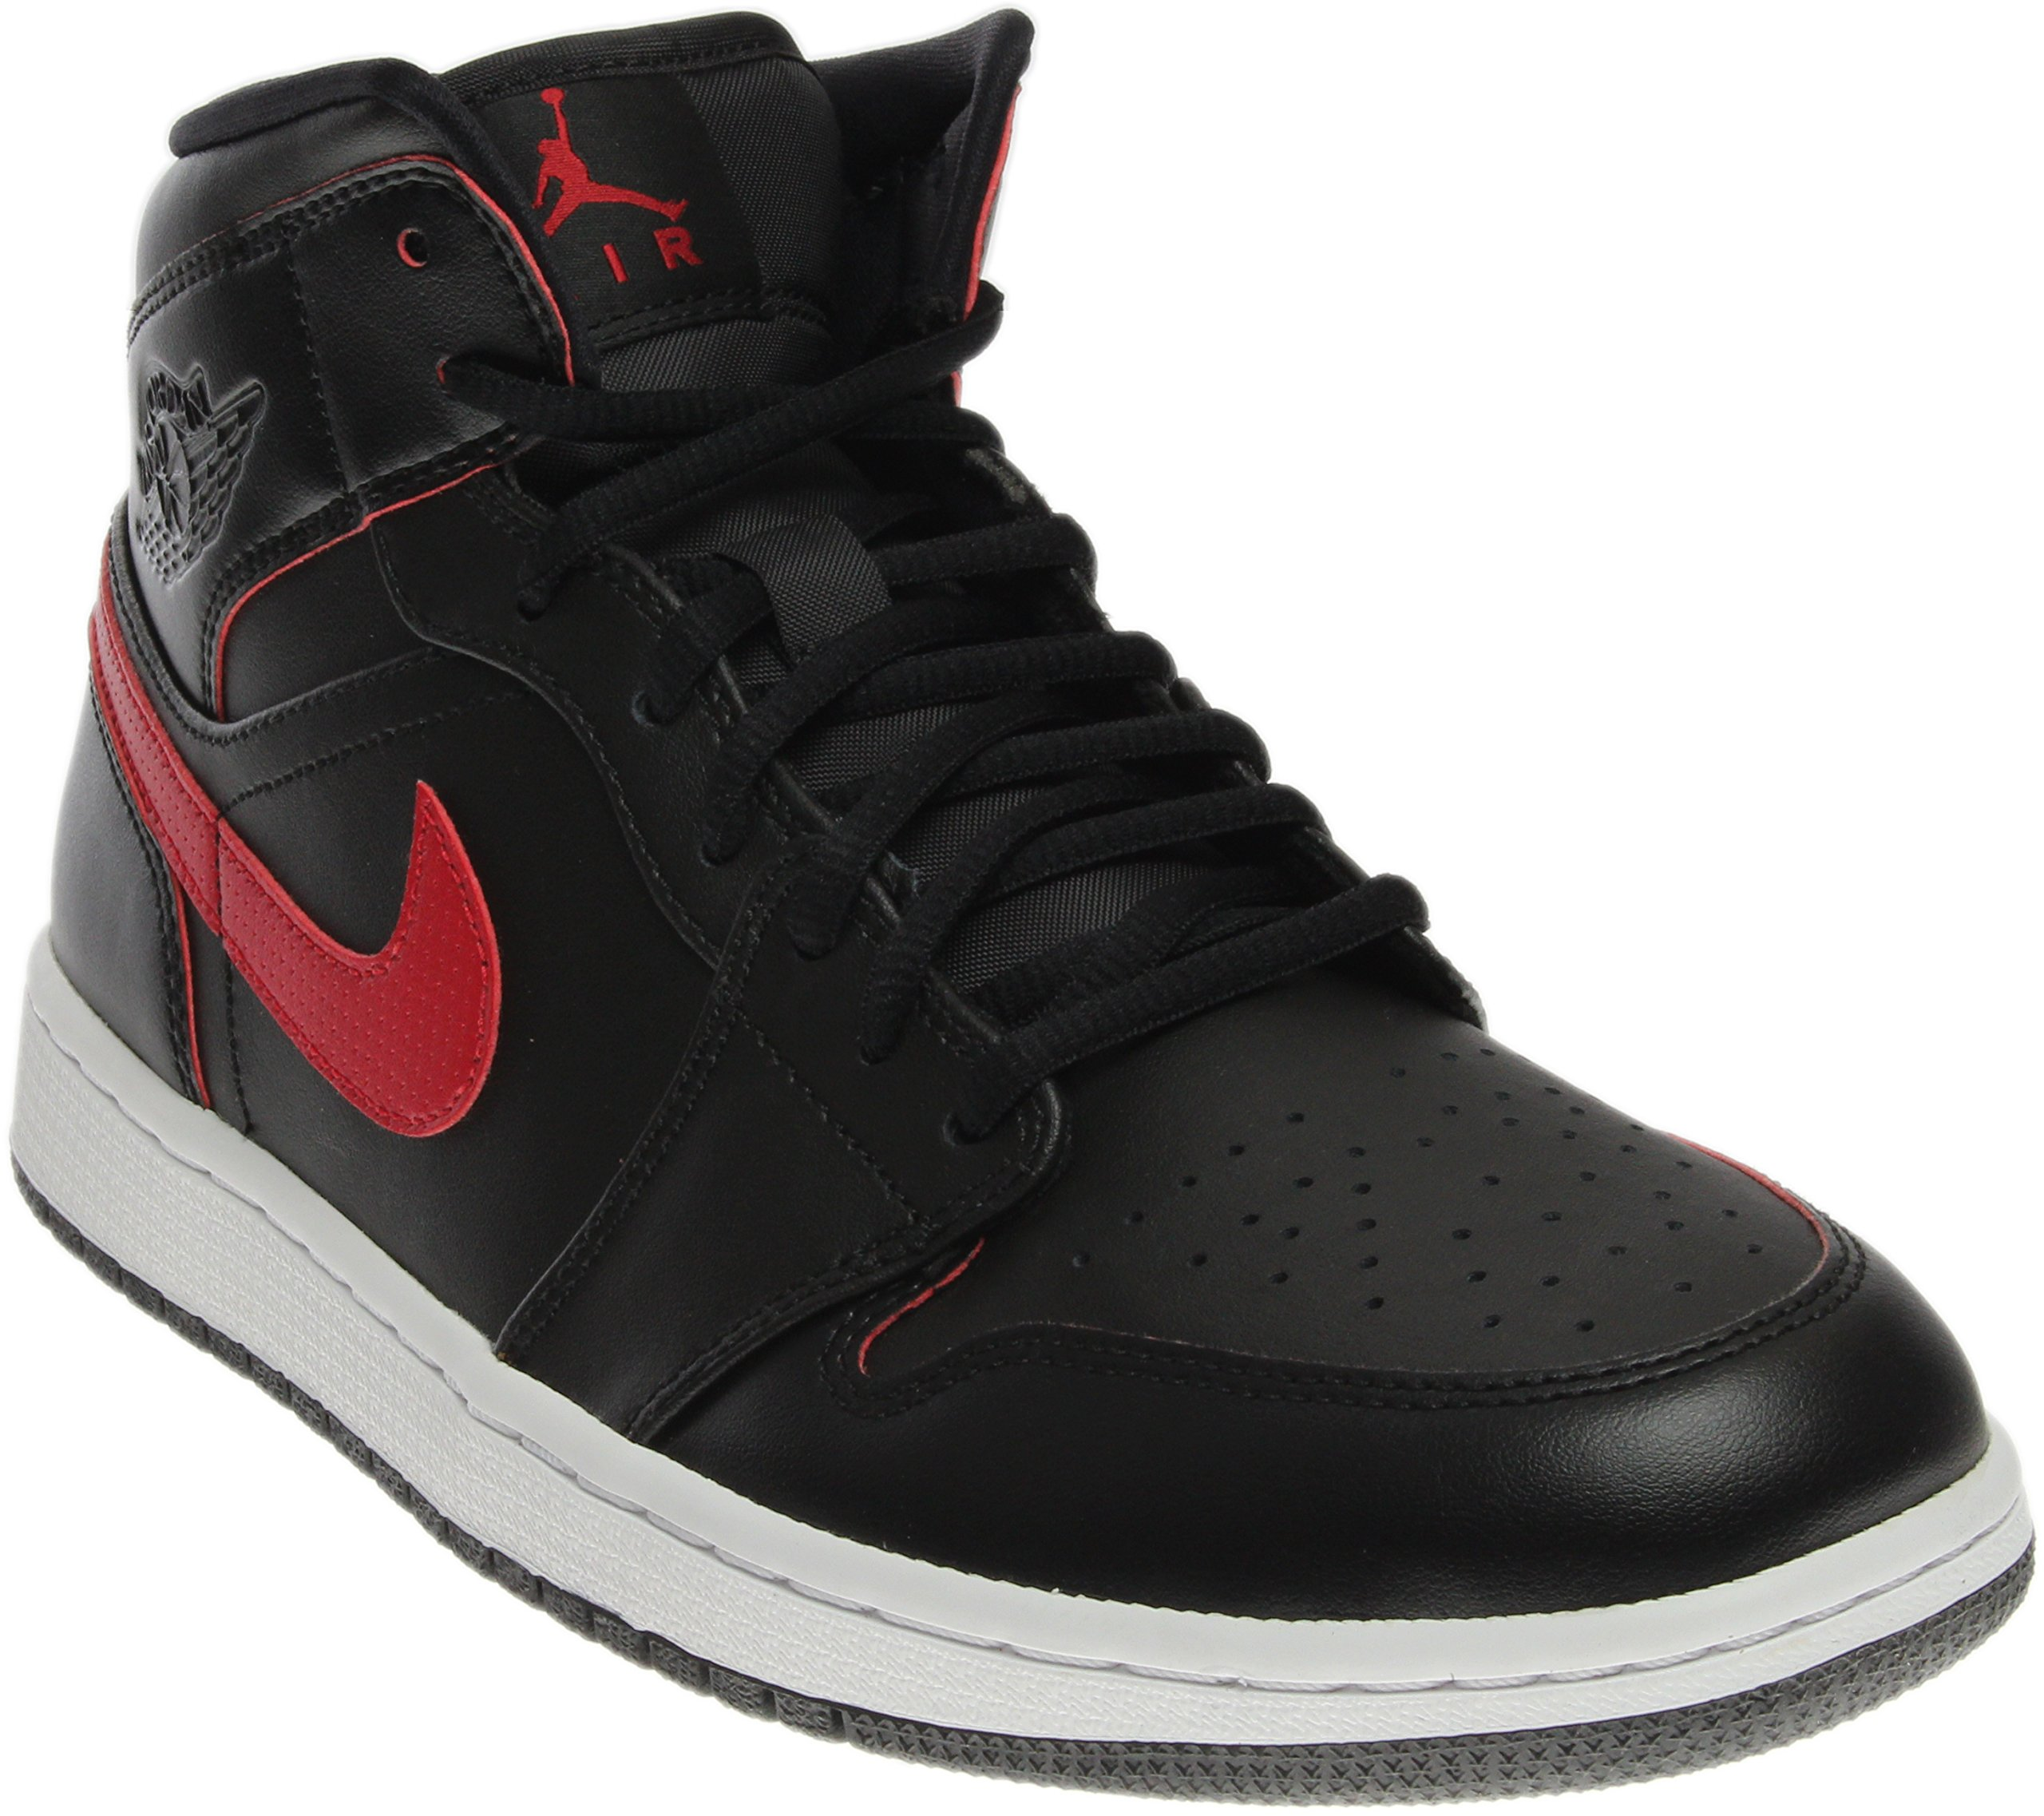 Jordan Nike Men's Air Mid Black/Team Red/Team Red/White Basketball Shoe 10.5 Men US